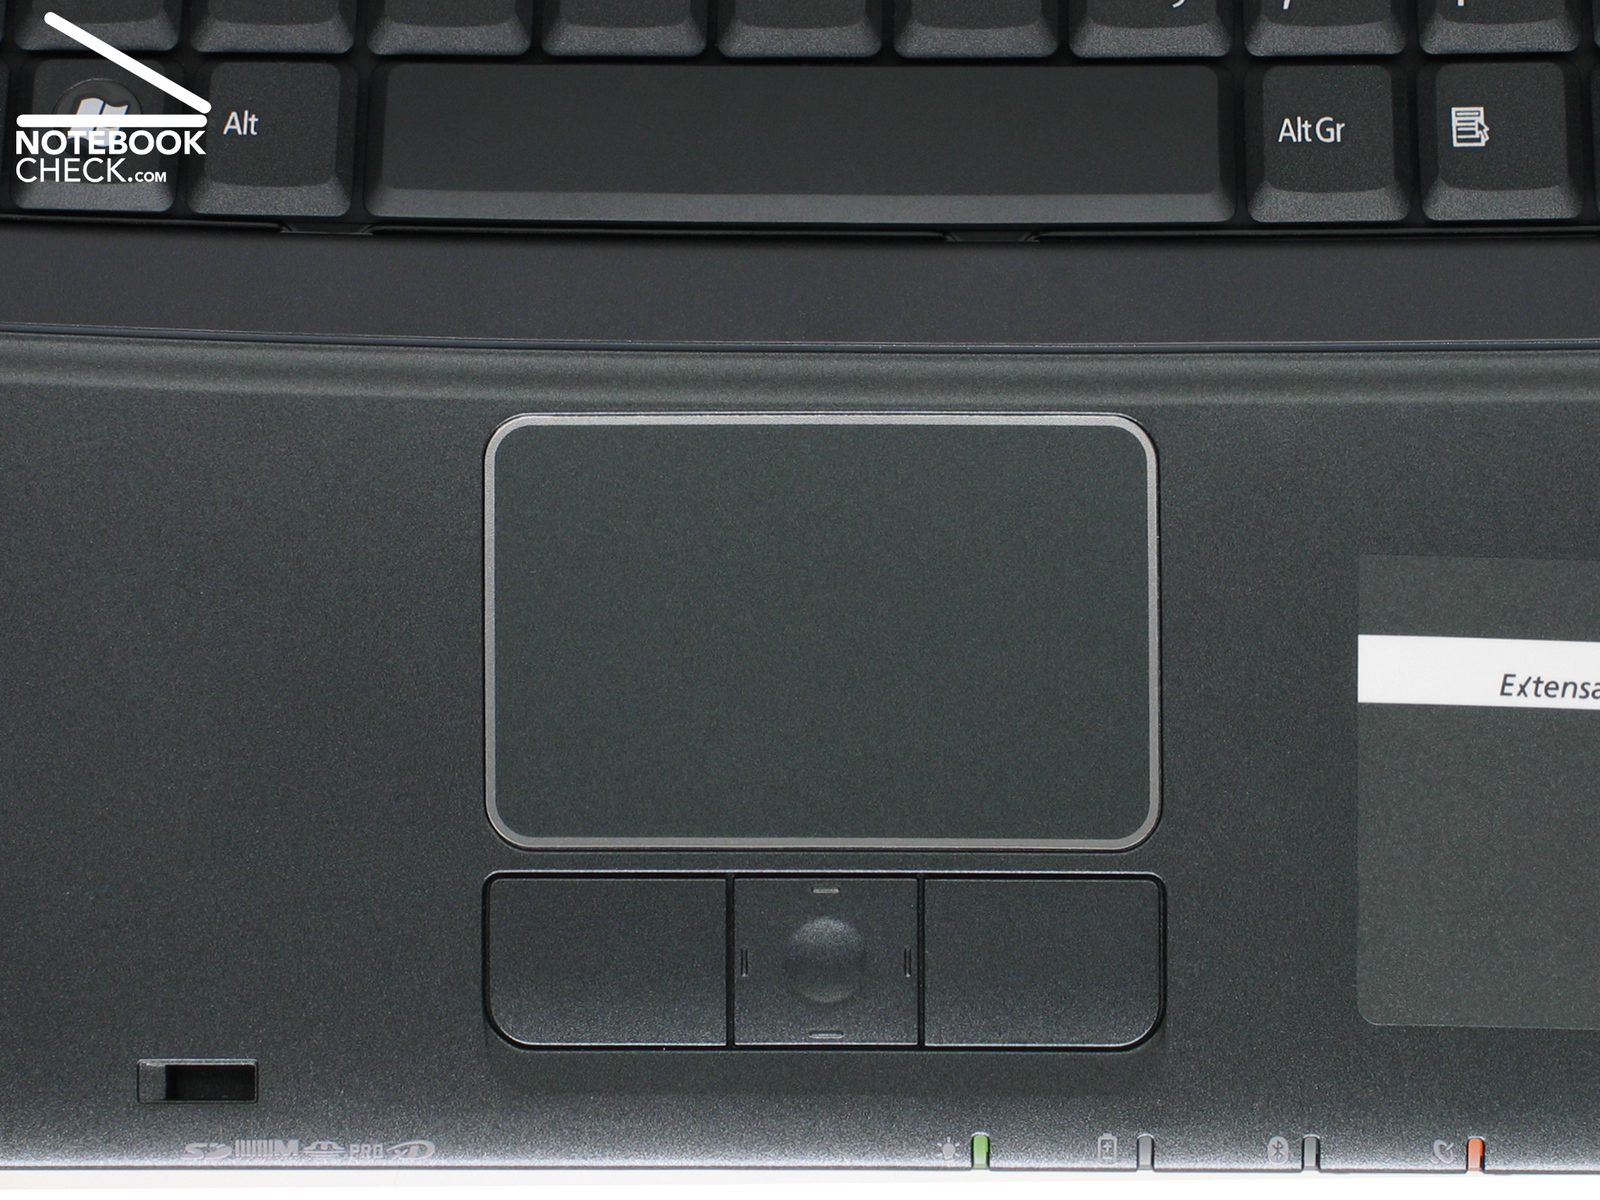 ACER EXTENSA 5200 NOTEBOOK BLUETOOTH BROADCOM WINDOWS 7 X64 DRIVER